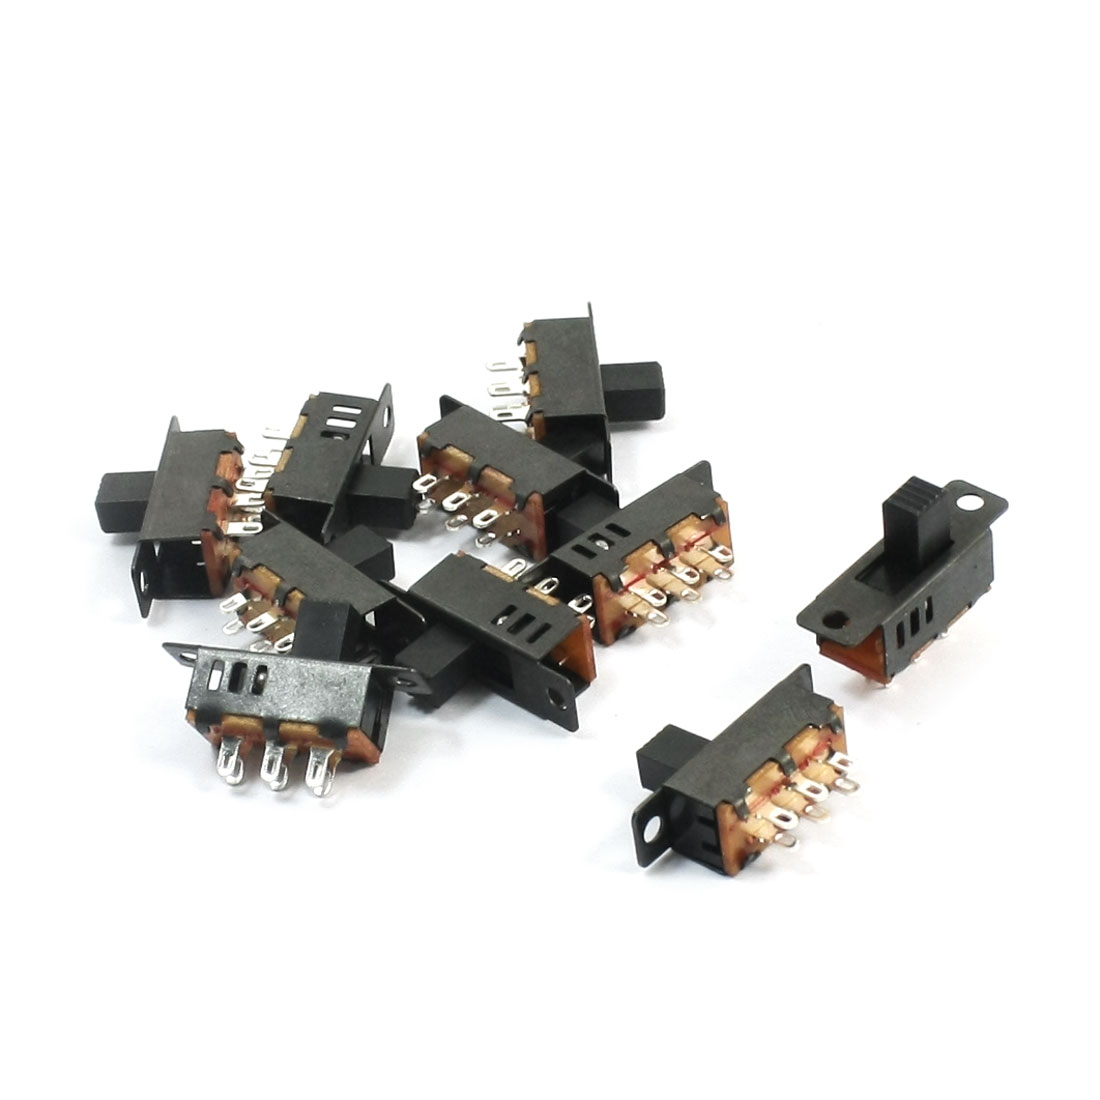 10Pcs DPDT 3-Position 6 Pin Miniature Horizontal Sliding Slide Switch